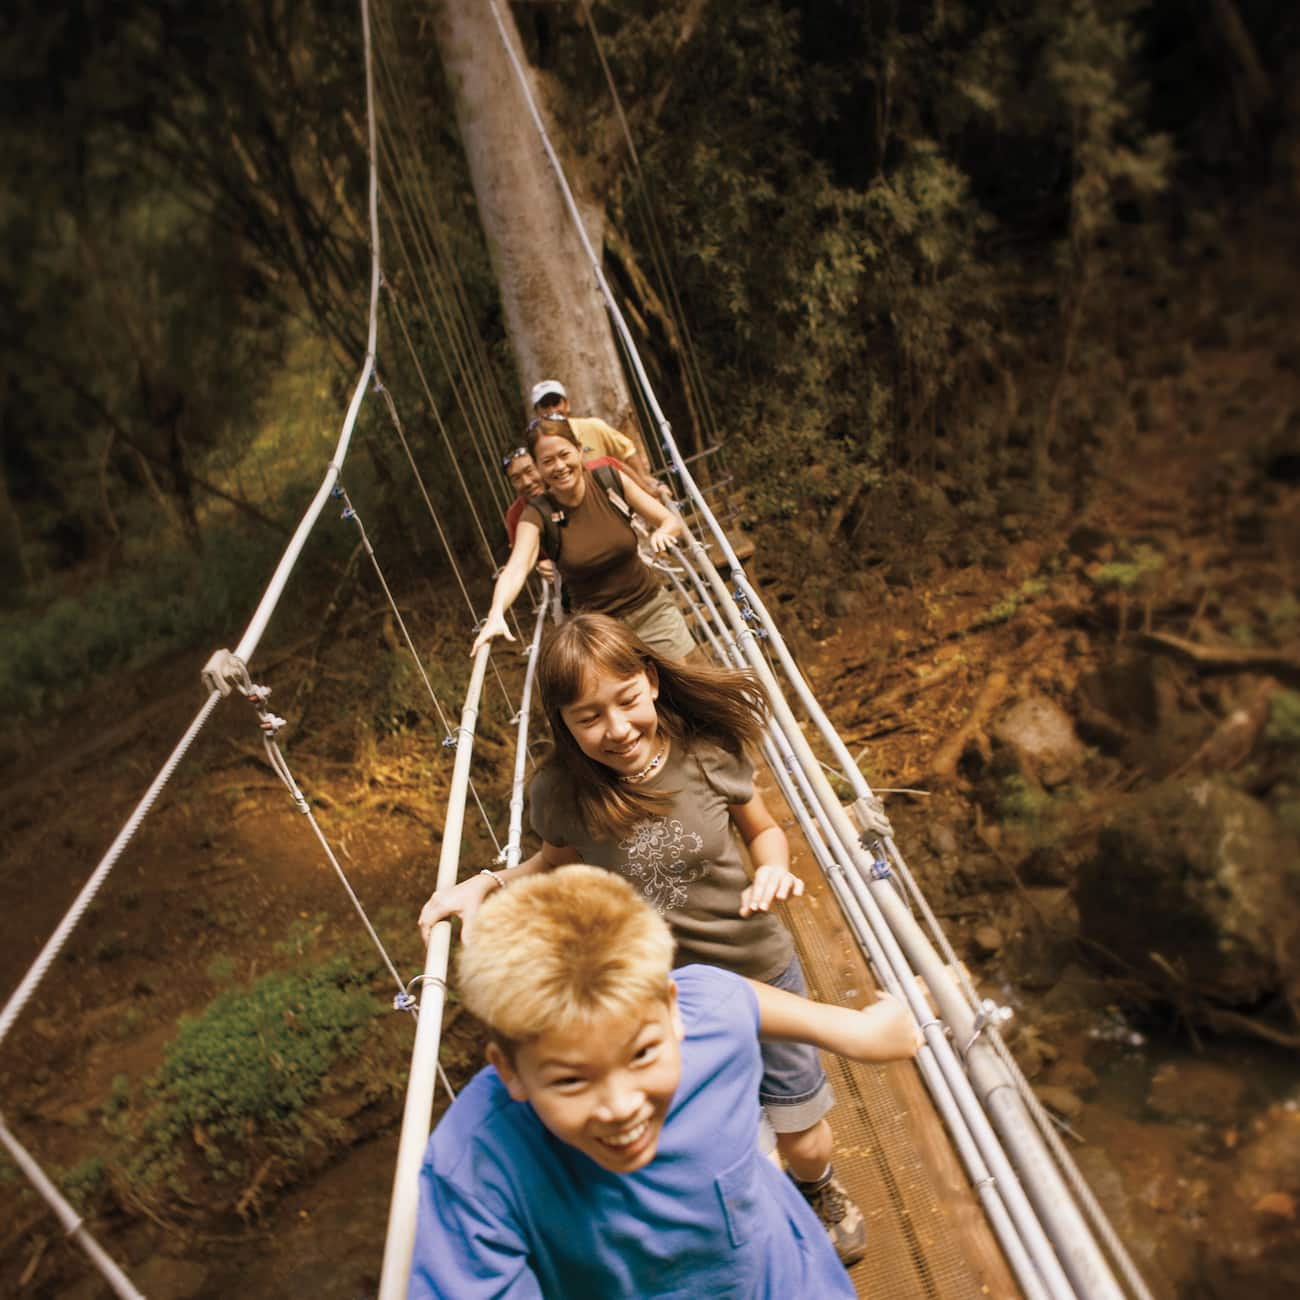 A group of Adventurers cross a hanging bridge above the rainforest in Costa Rica